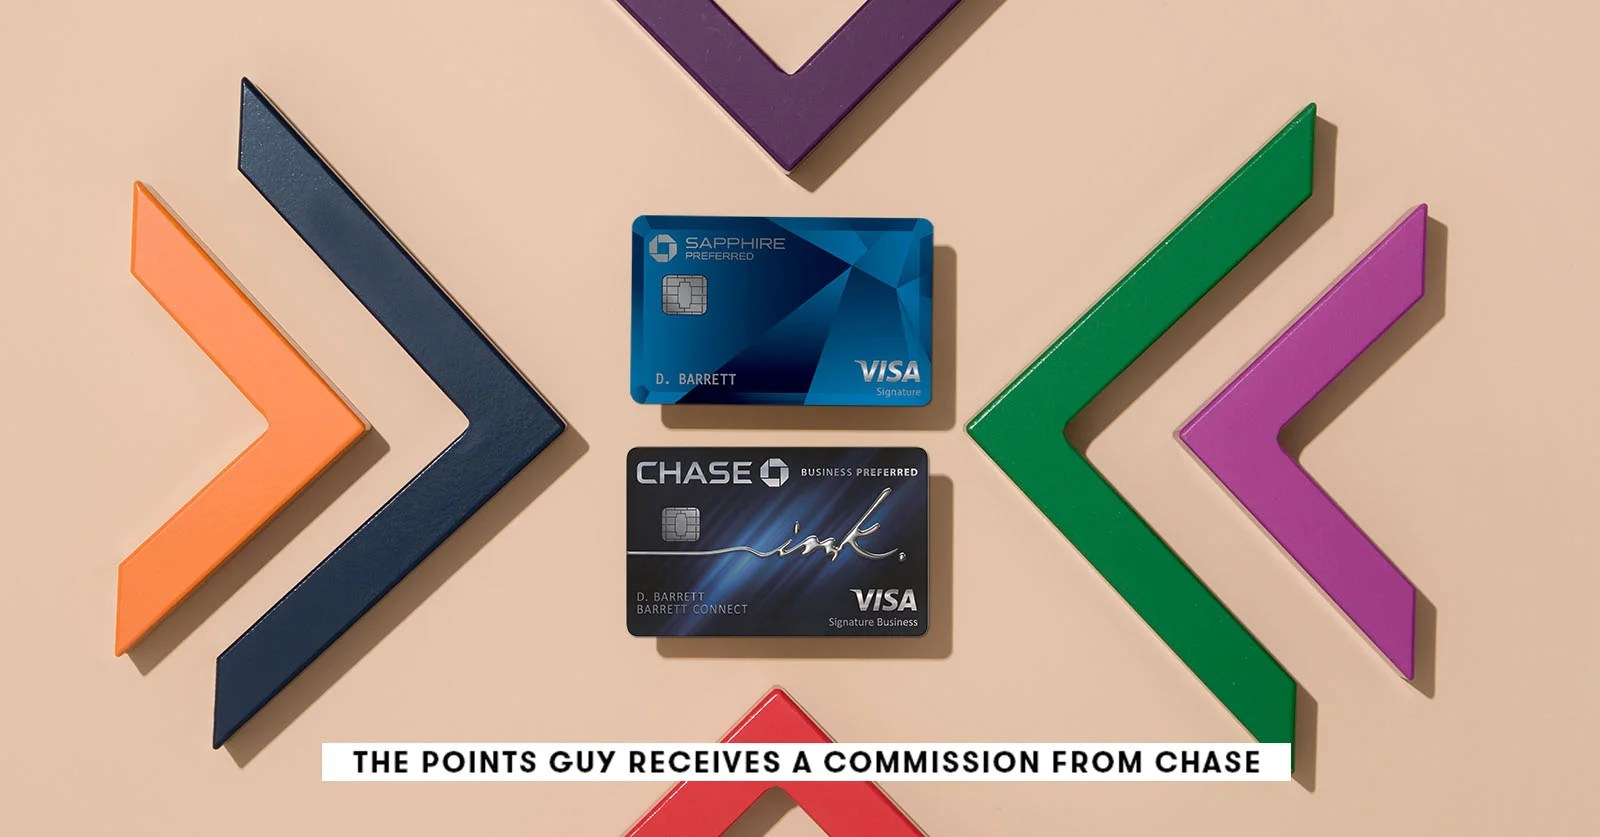 Chase shut down my accounts after I applied for too many cards, but there's a happy ending